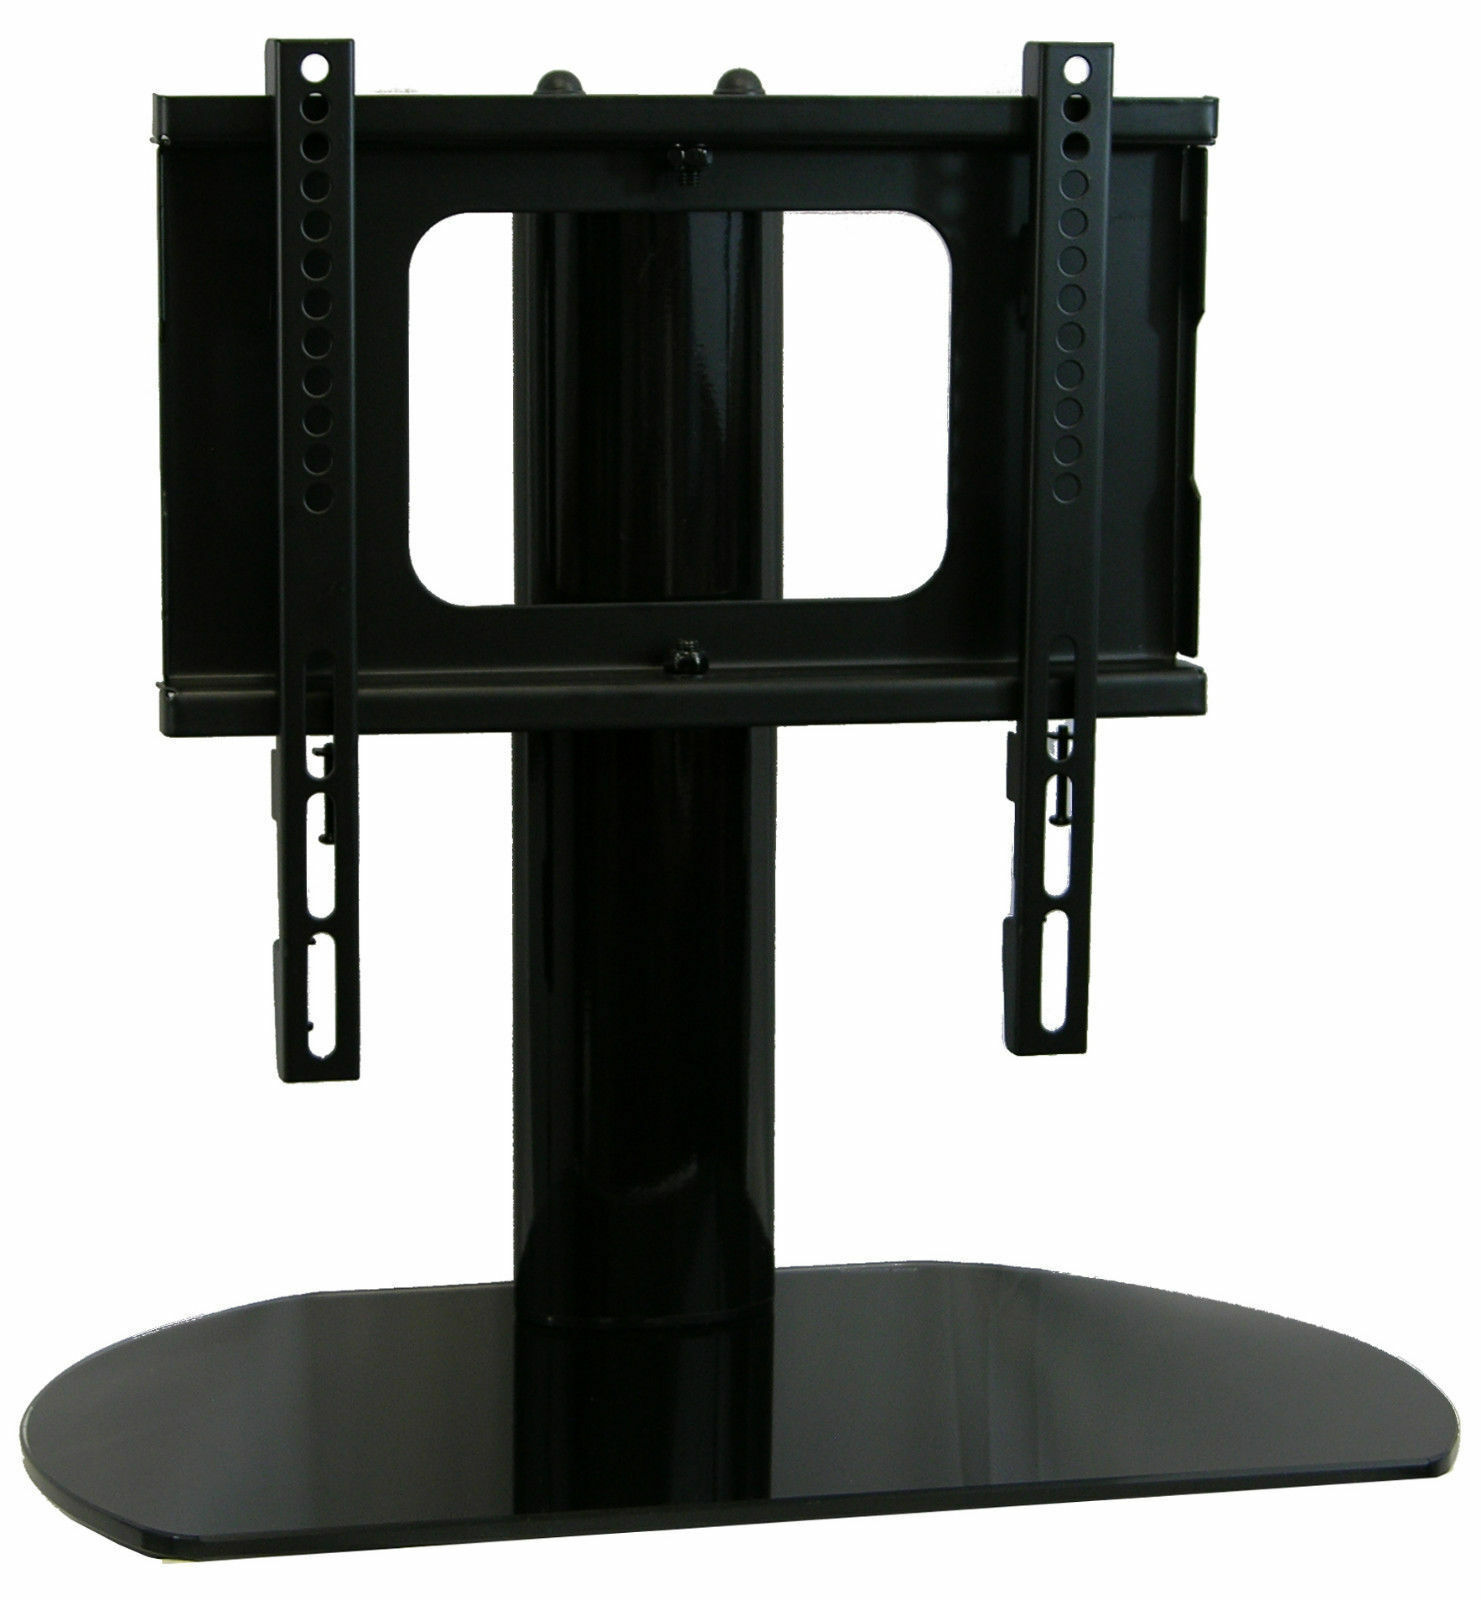 New Universal Replacement Swivel TV Stand/Base for Samsung LN32B360C5D